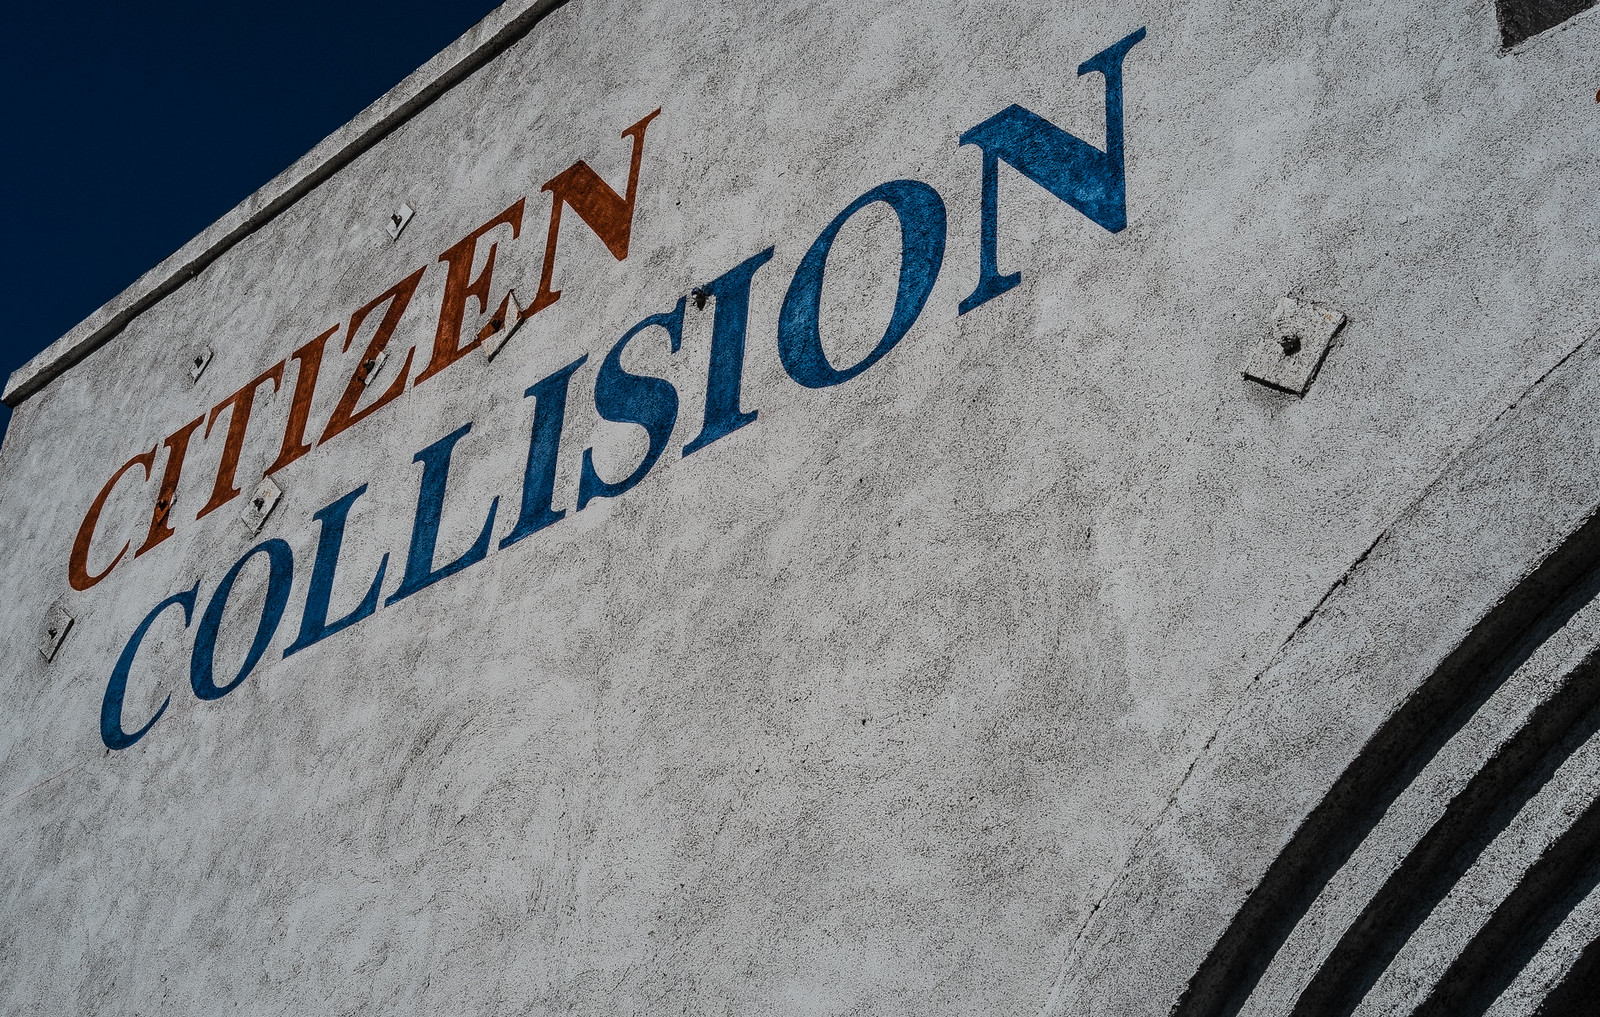 Citizen Collision | by michaelj1998